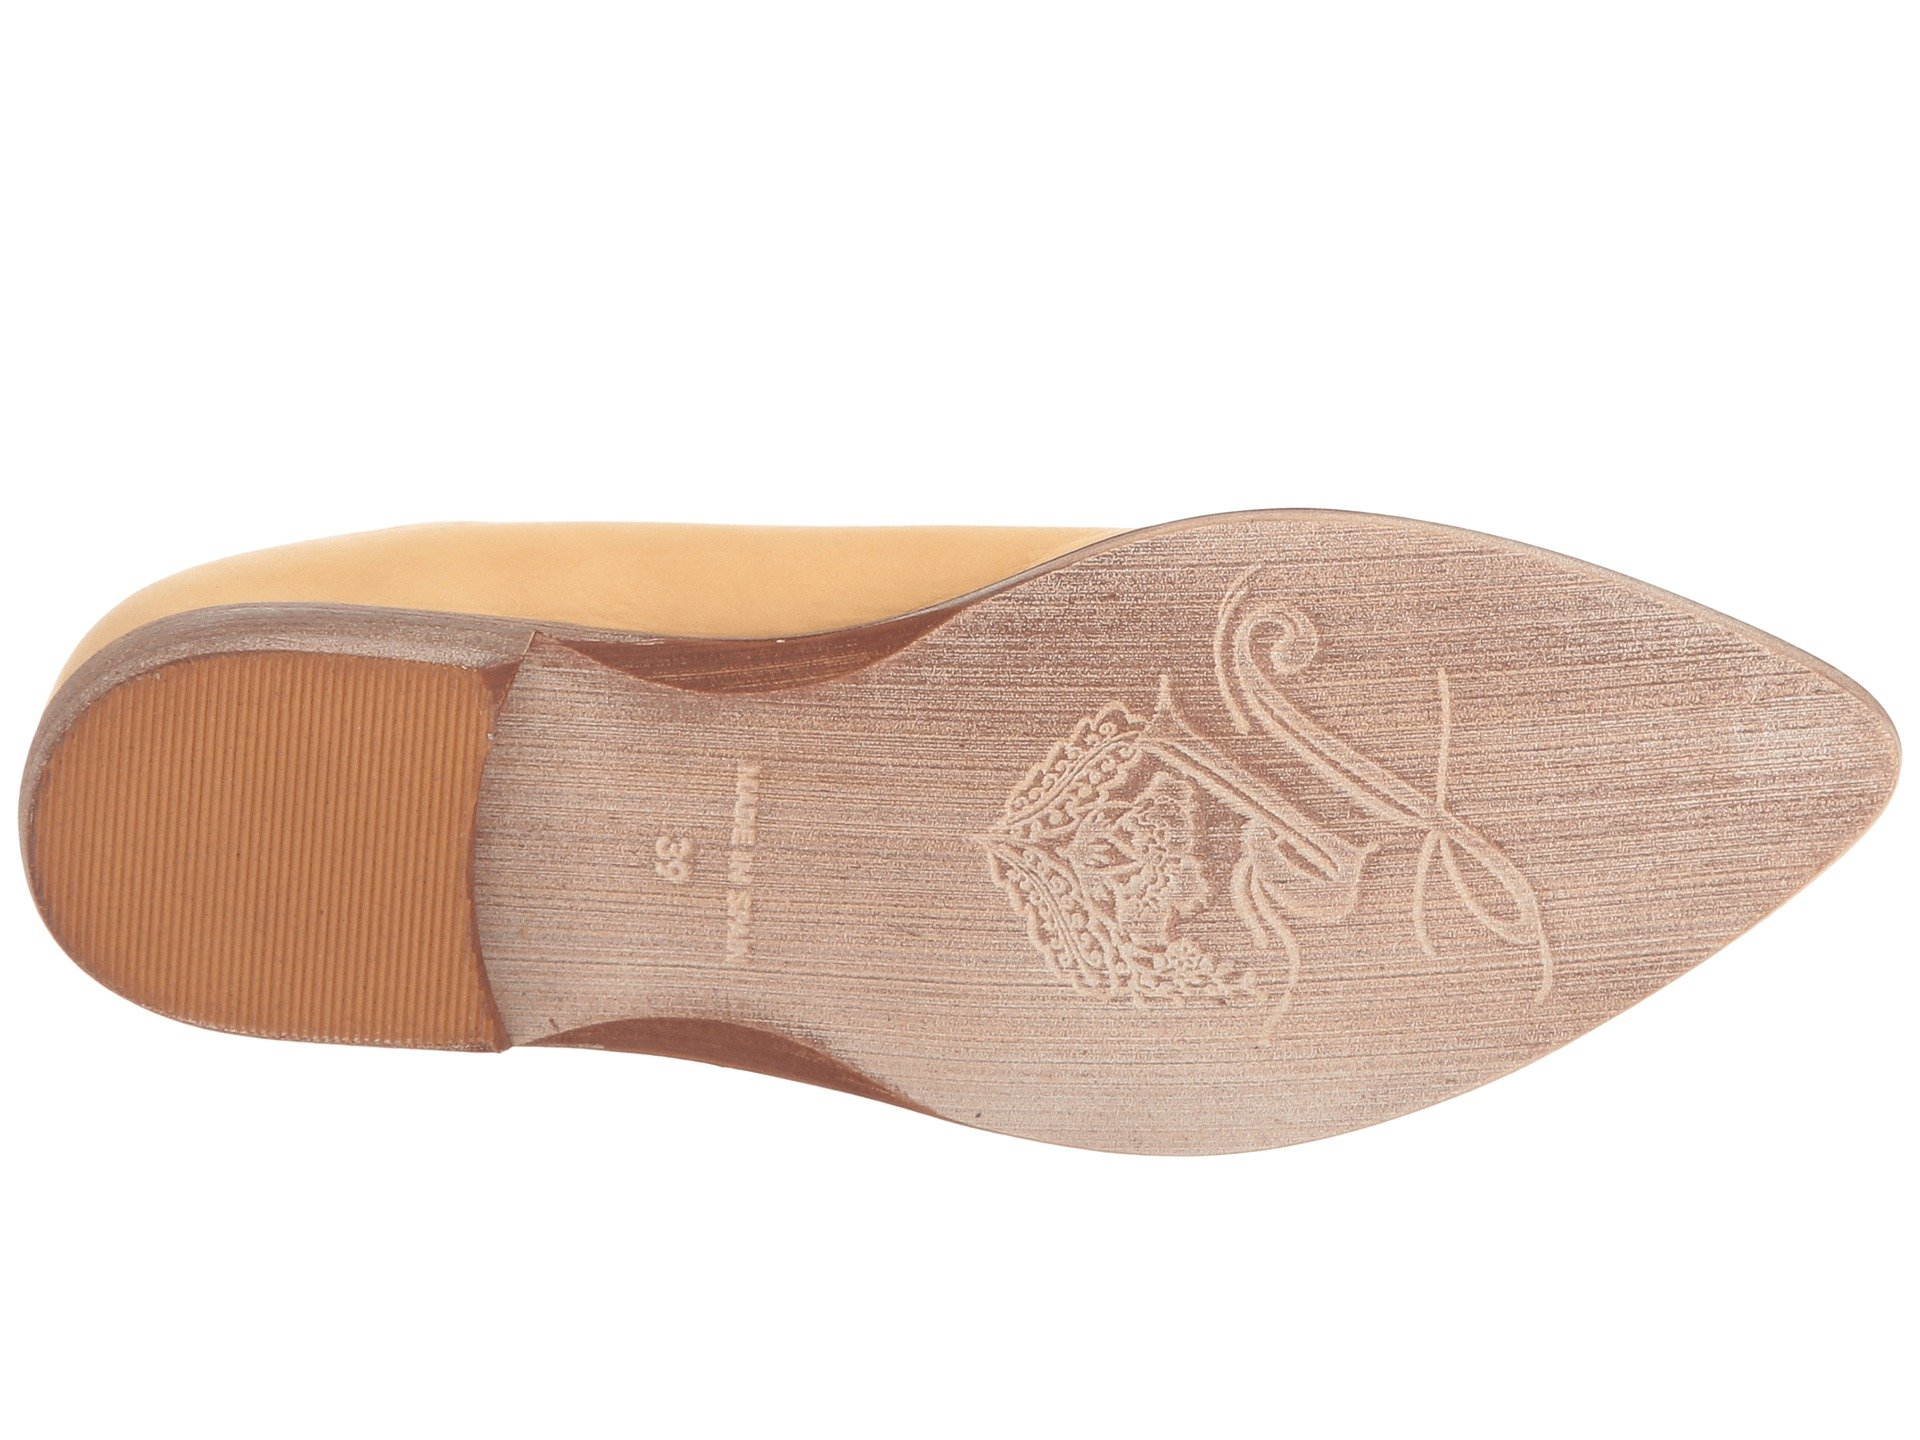 Free People Royale Flat (38 M EU) by Free People (Image #4)